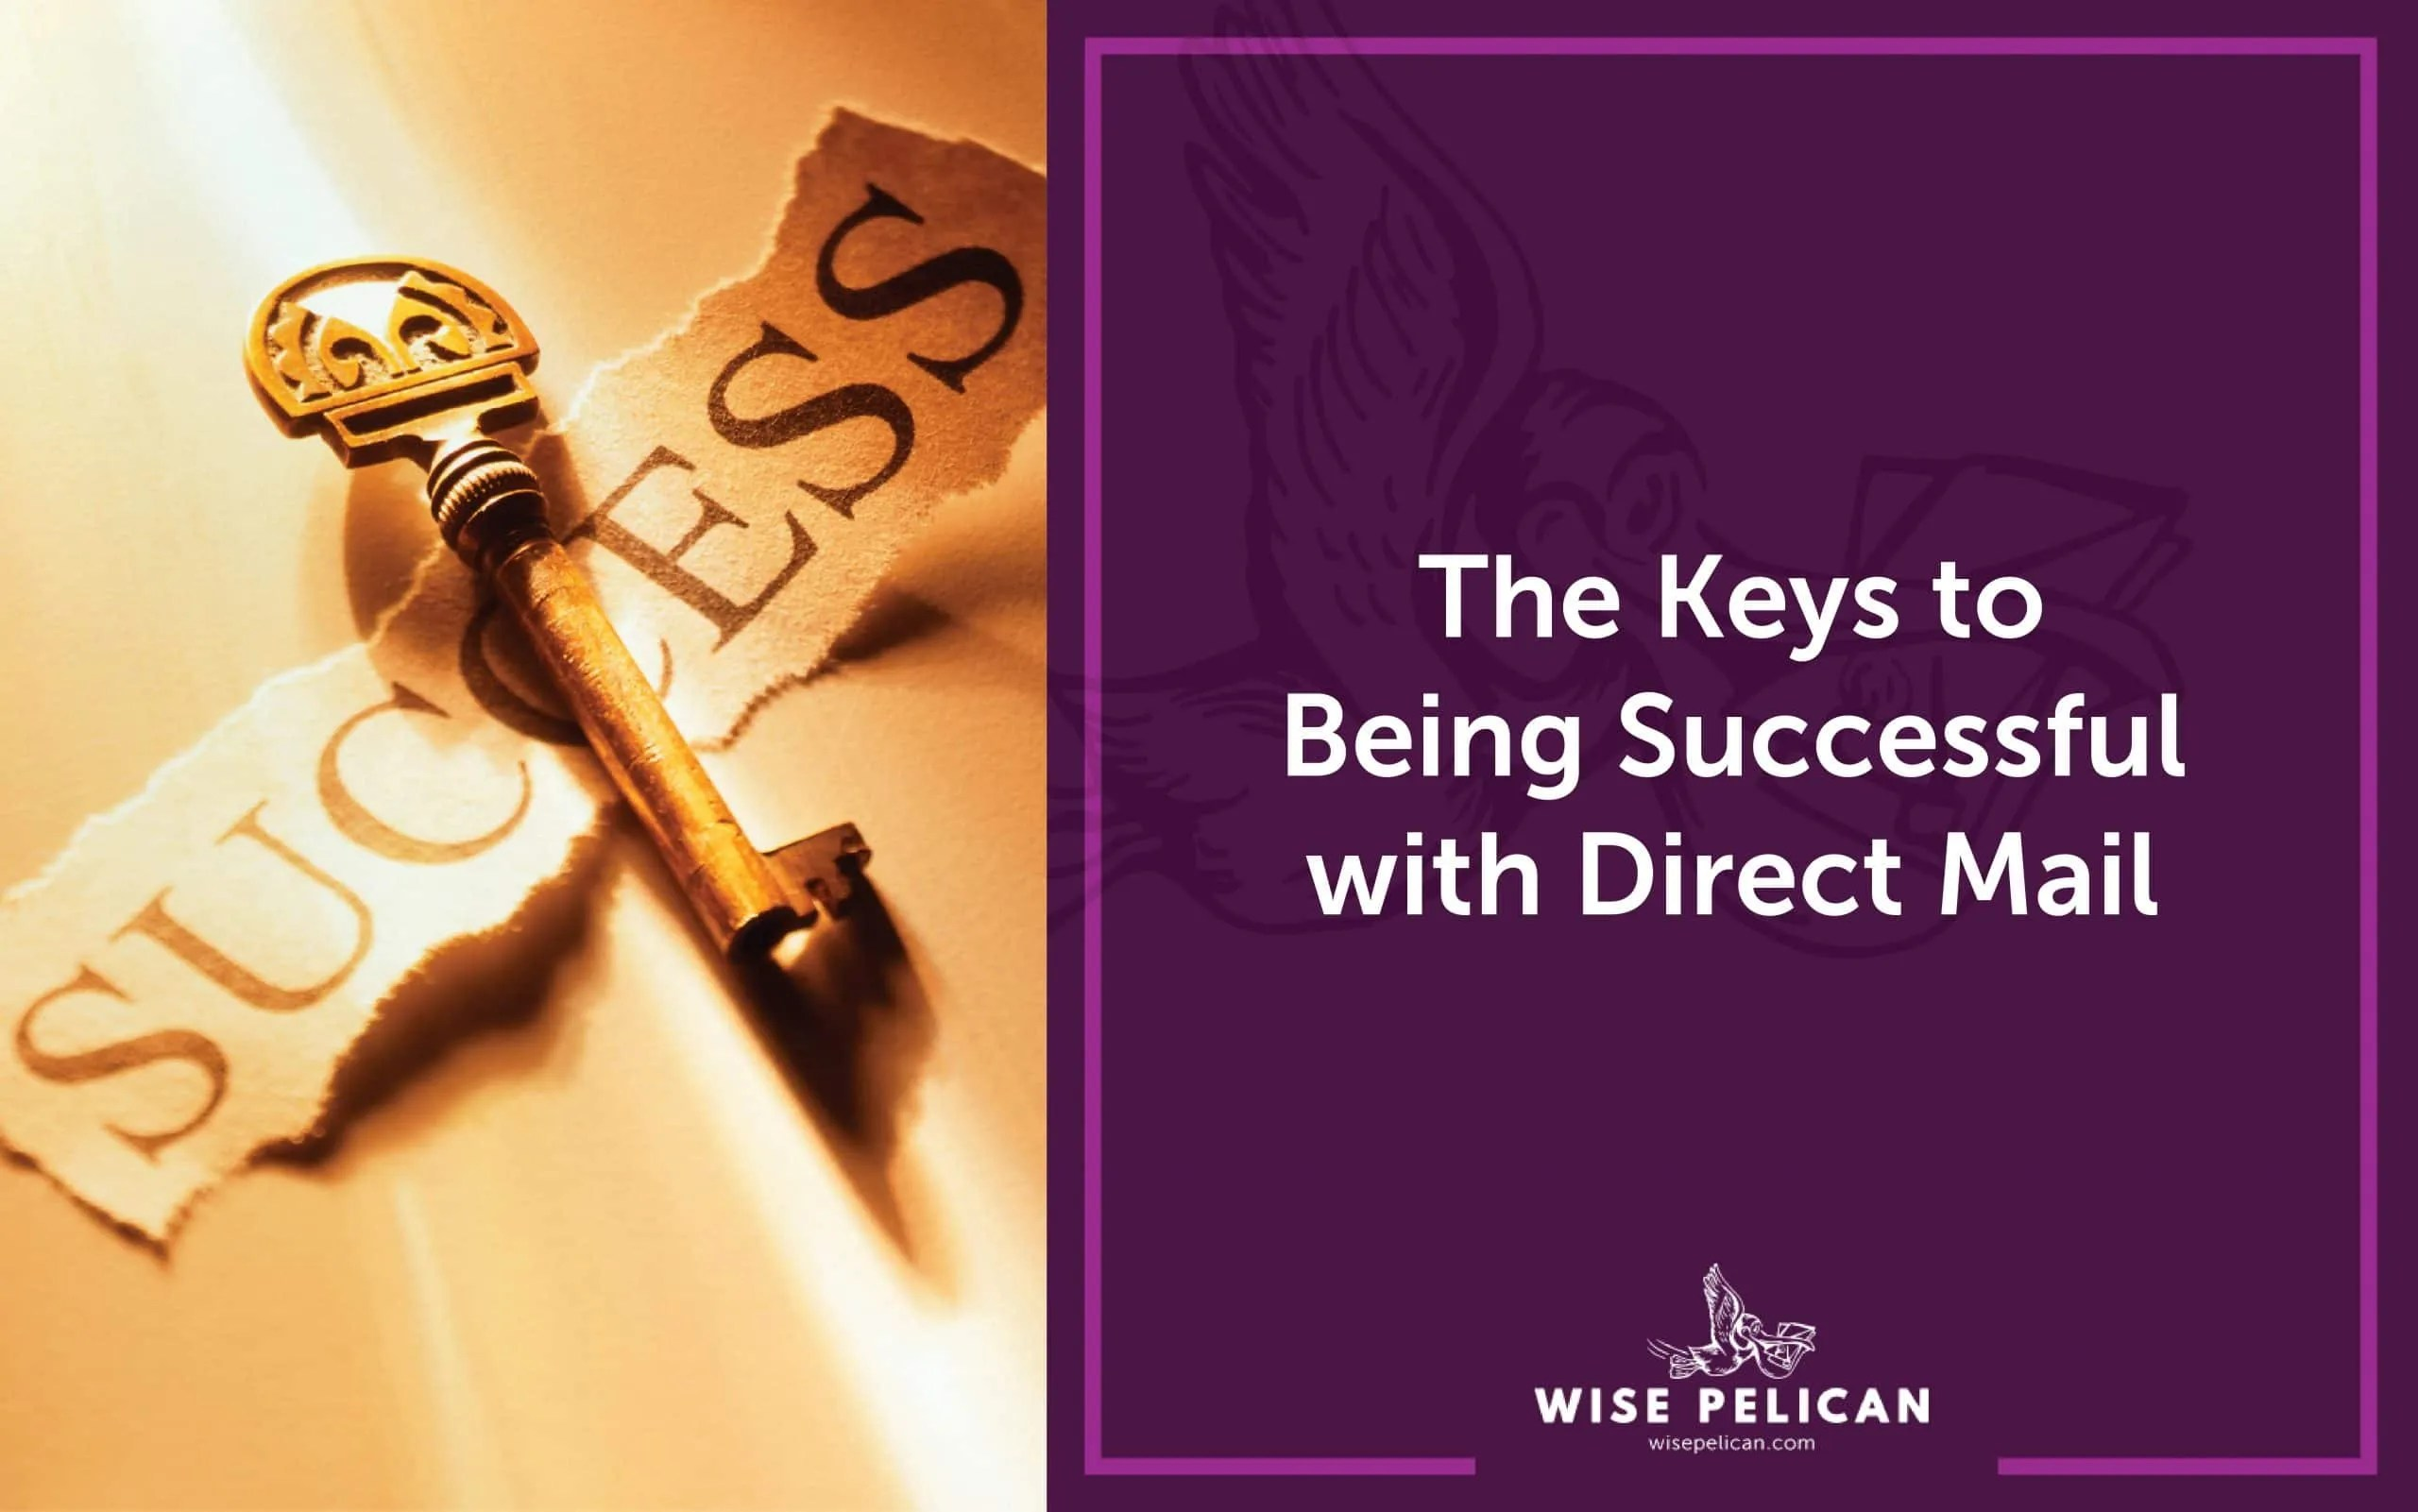 The Keys to Being Successful with Direct Mail